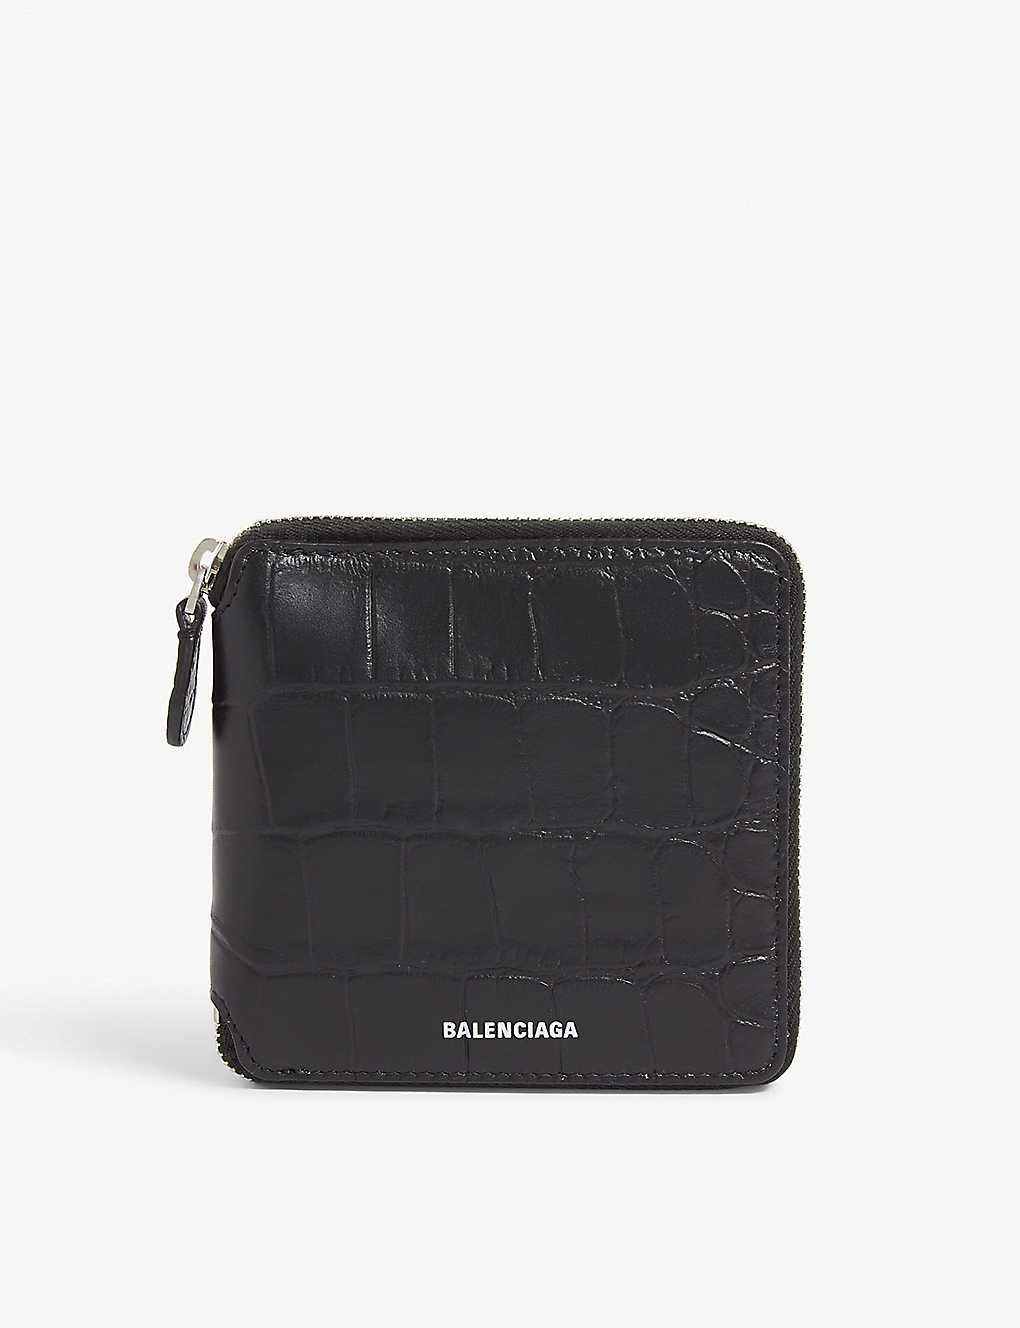 Croc Embossed Leather Wallet Embossed Leather Balenciaga Wallet Wallet